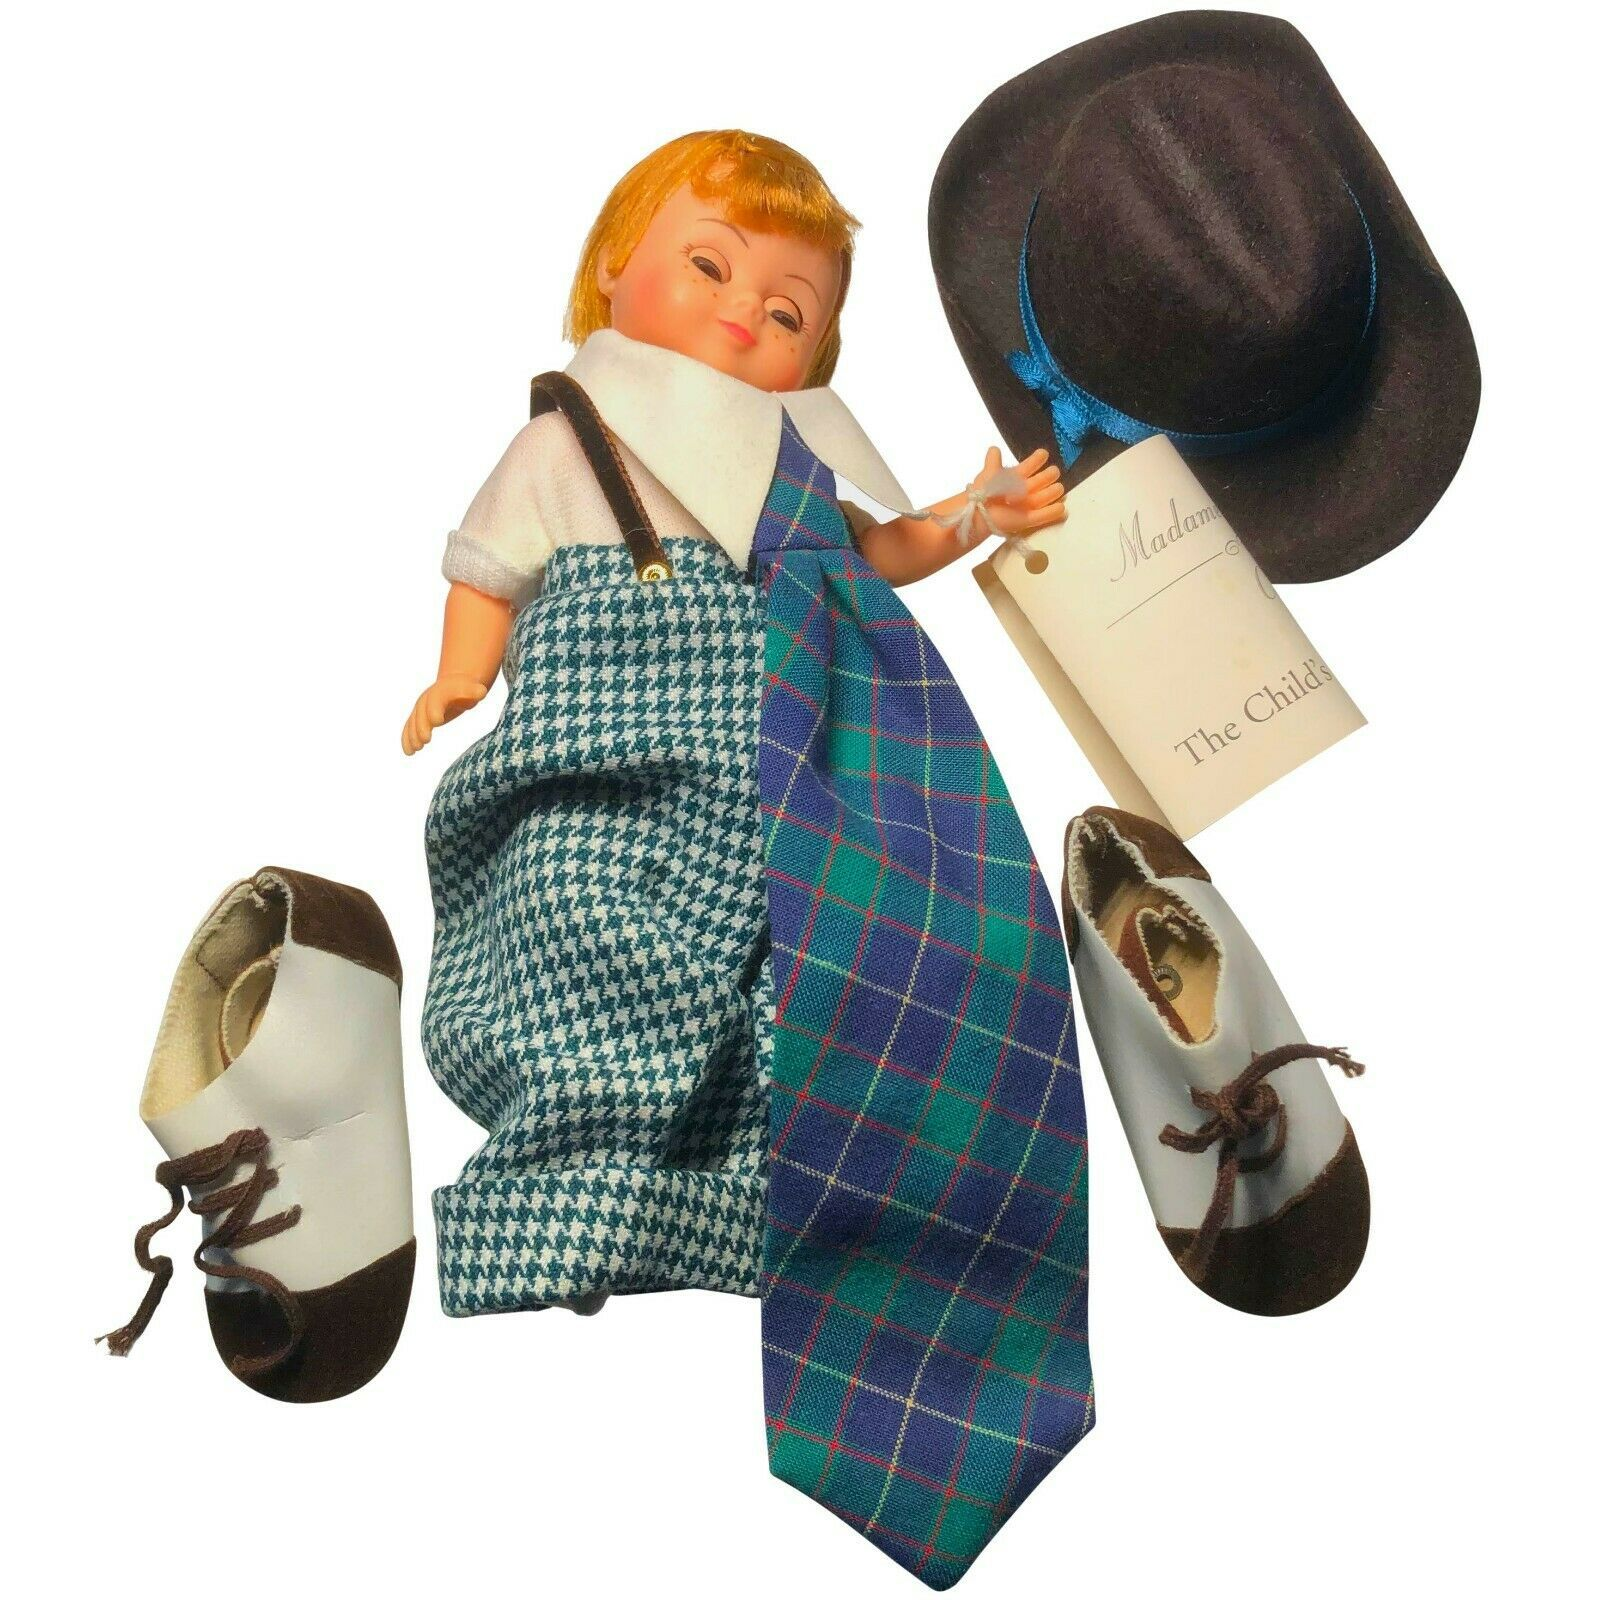 """Madame Alexander 8"""" doll """"Dressed Like Daddy"""" 17002, Mint out of Box - $39.99"""